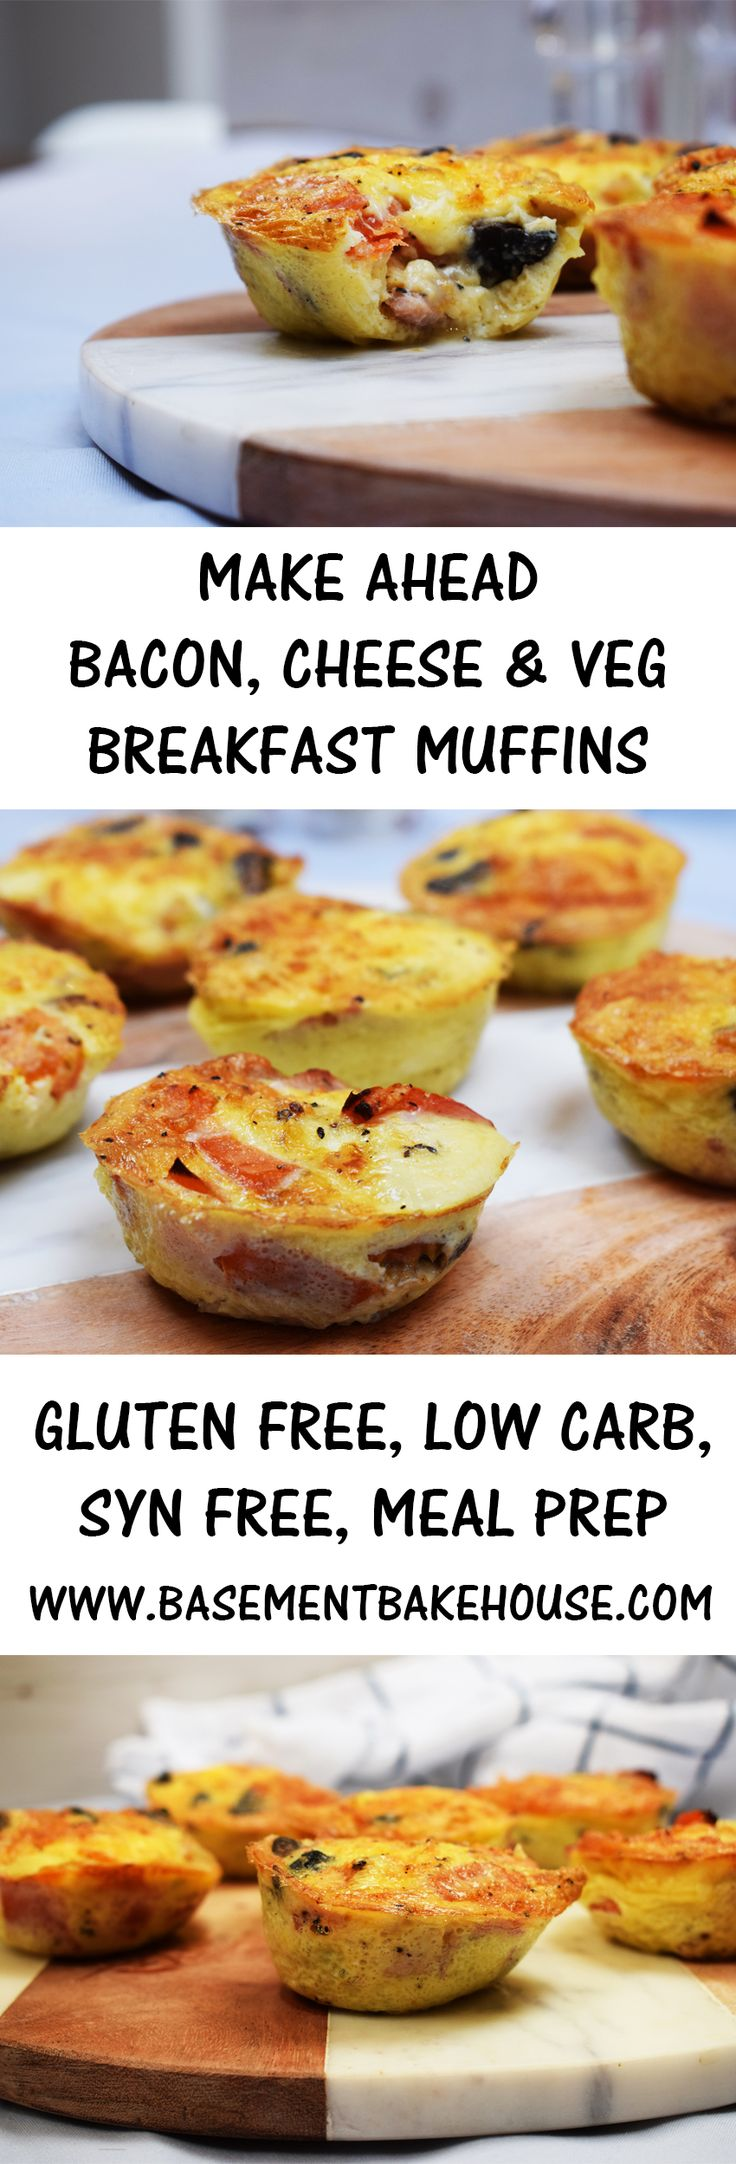 Make Ahead Bacon Cheese & Veg Breakfast Muffins - Gluten Free, Low Carb, Syn Free on Slimming World